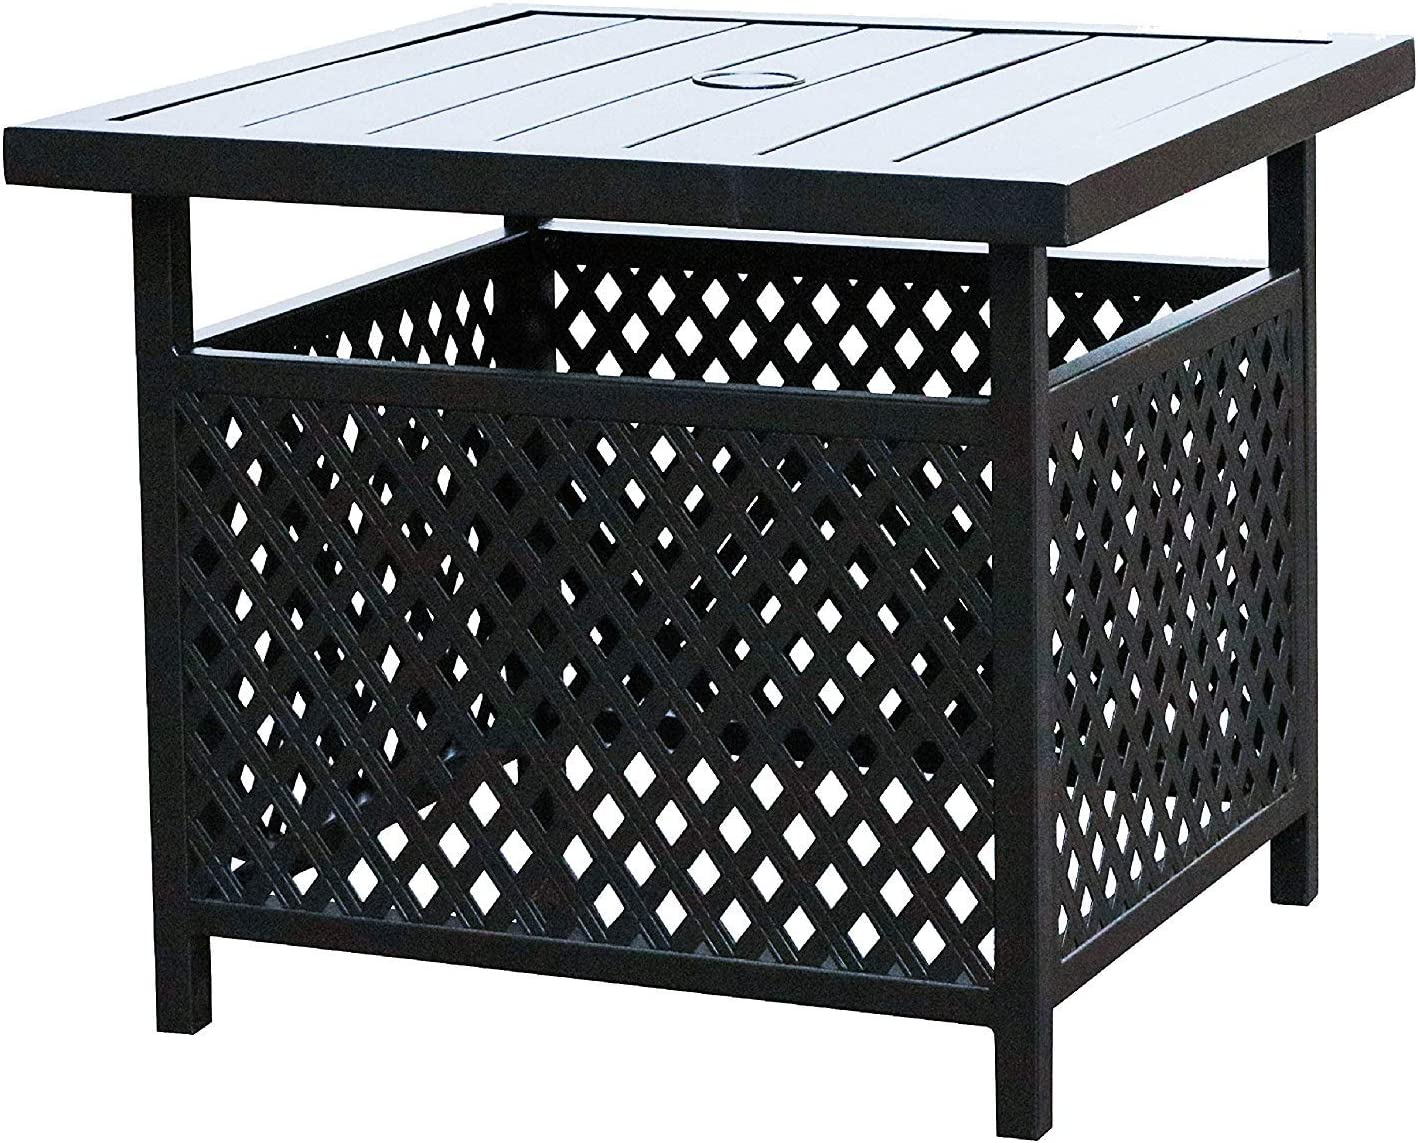 LOKATSE HOME Patio Side Bistro Table Stand with Umbrella Hole Base Outdoor Garden Pool, 21.8(L) x 21.8(W) x 18.5(H) inch, Black